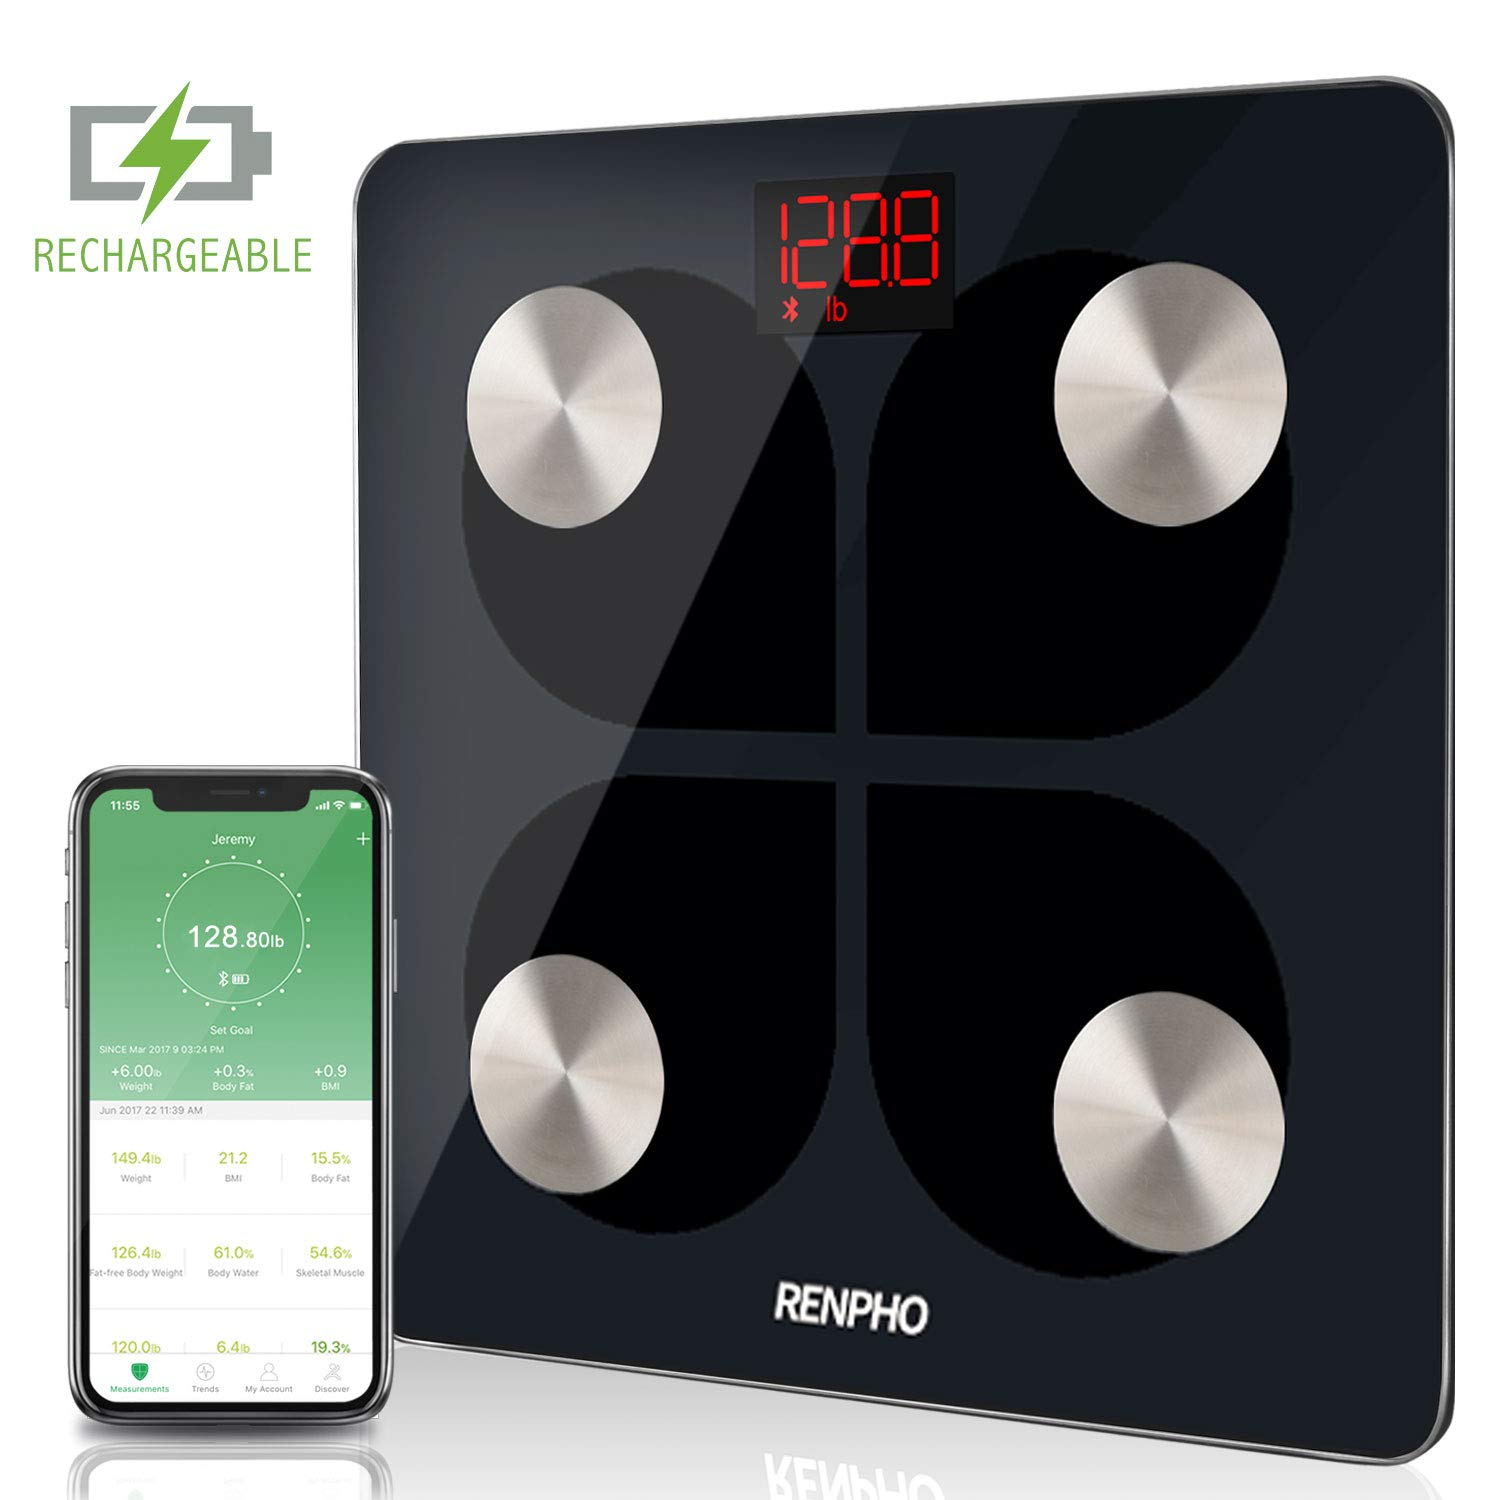 RENPHO Bluetooth Body Fat Smart Scale USB Rechargeable Digital Bathroom Weight Scale Body Fat Monitor with Smartphone App, 396 lbs by RENPHO (Image #1)